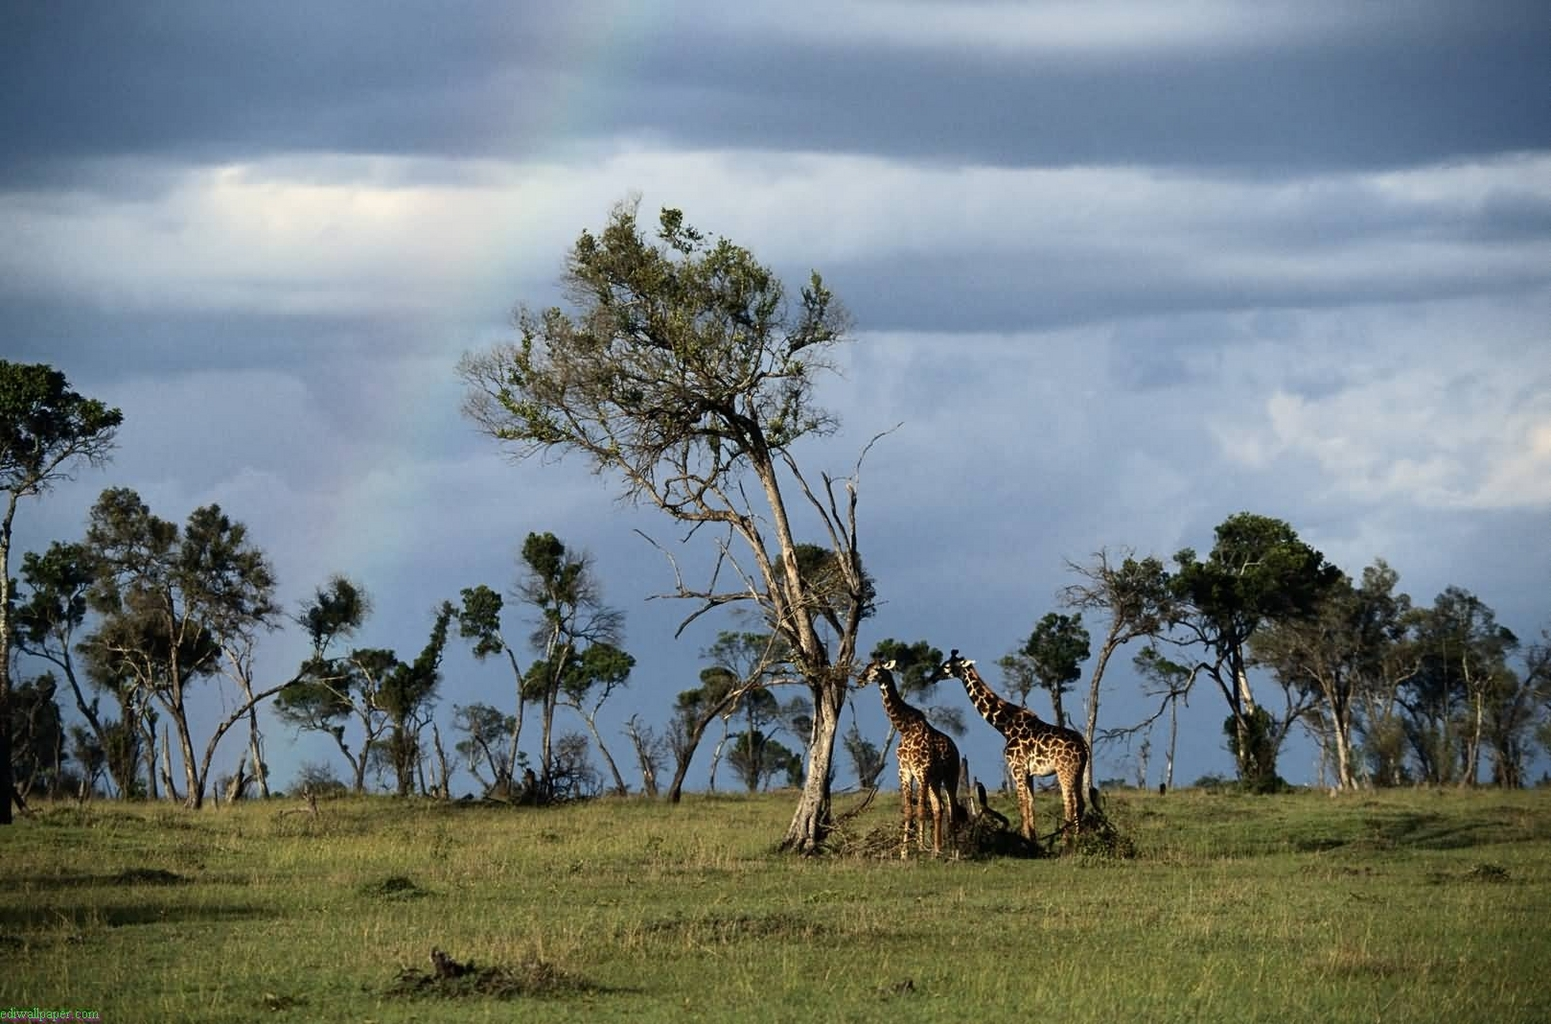 46102 download wallpaper Animals, Landscape, Nature, Giraffes screensavers and pictures for free